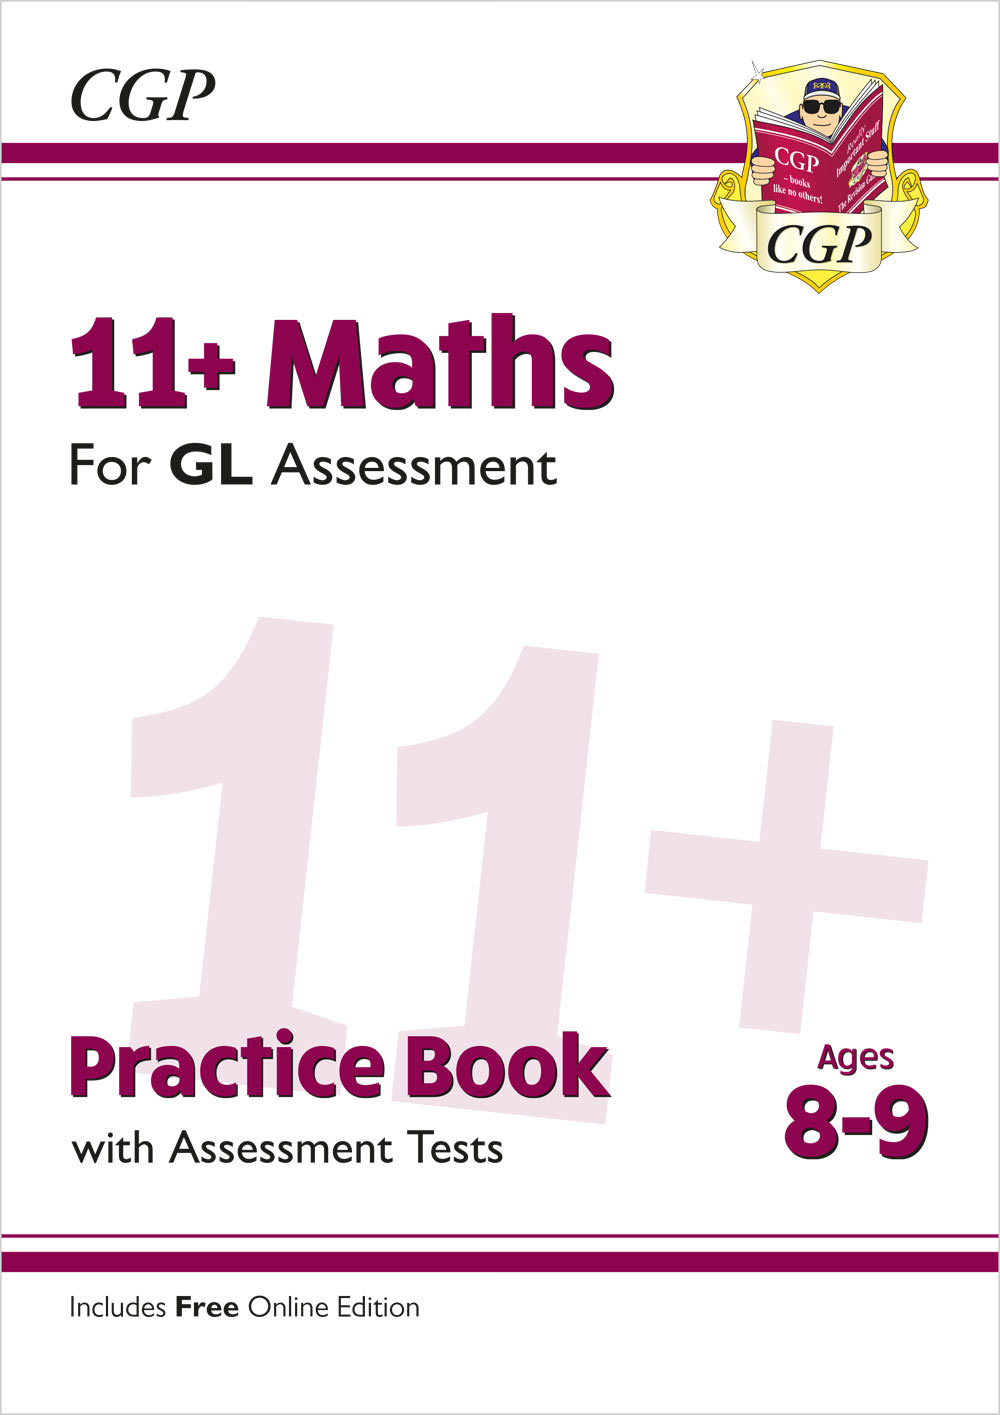 M4QE2 - 11+ GL Maths Practice Book & Assessment Tests - Ages 8-9 (with Online Edition)